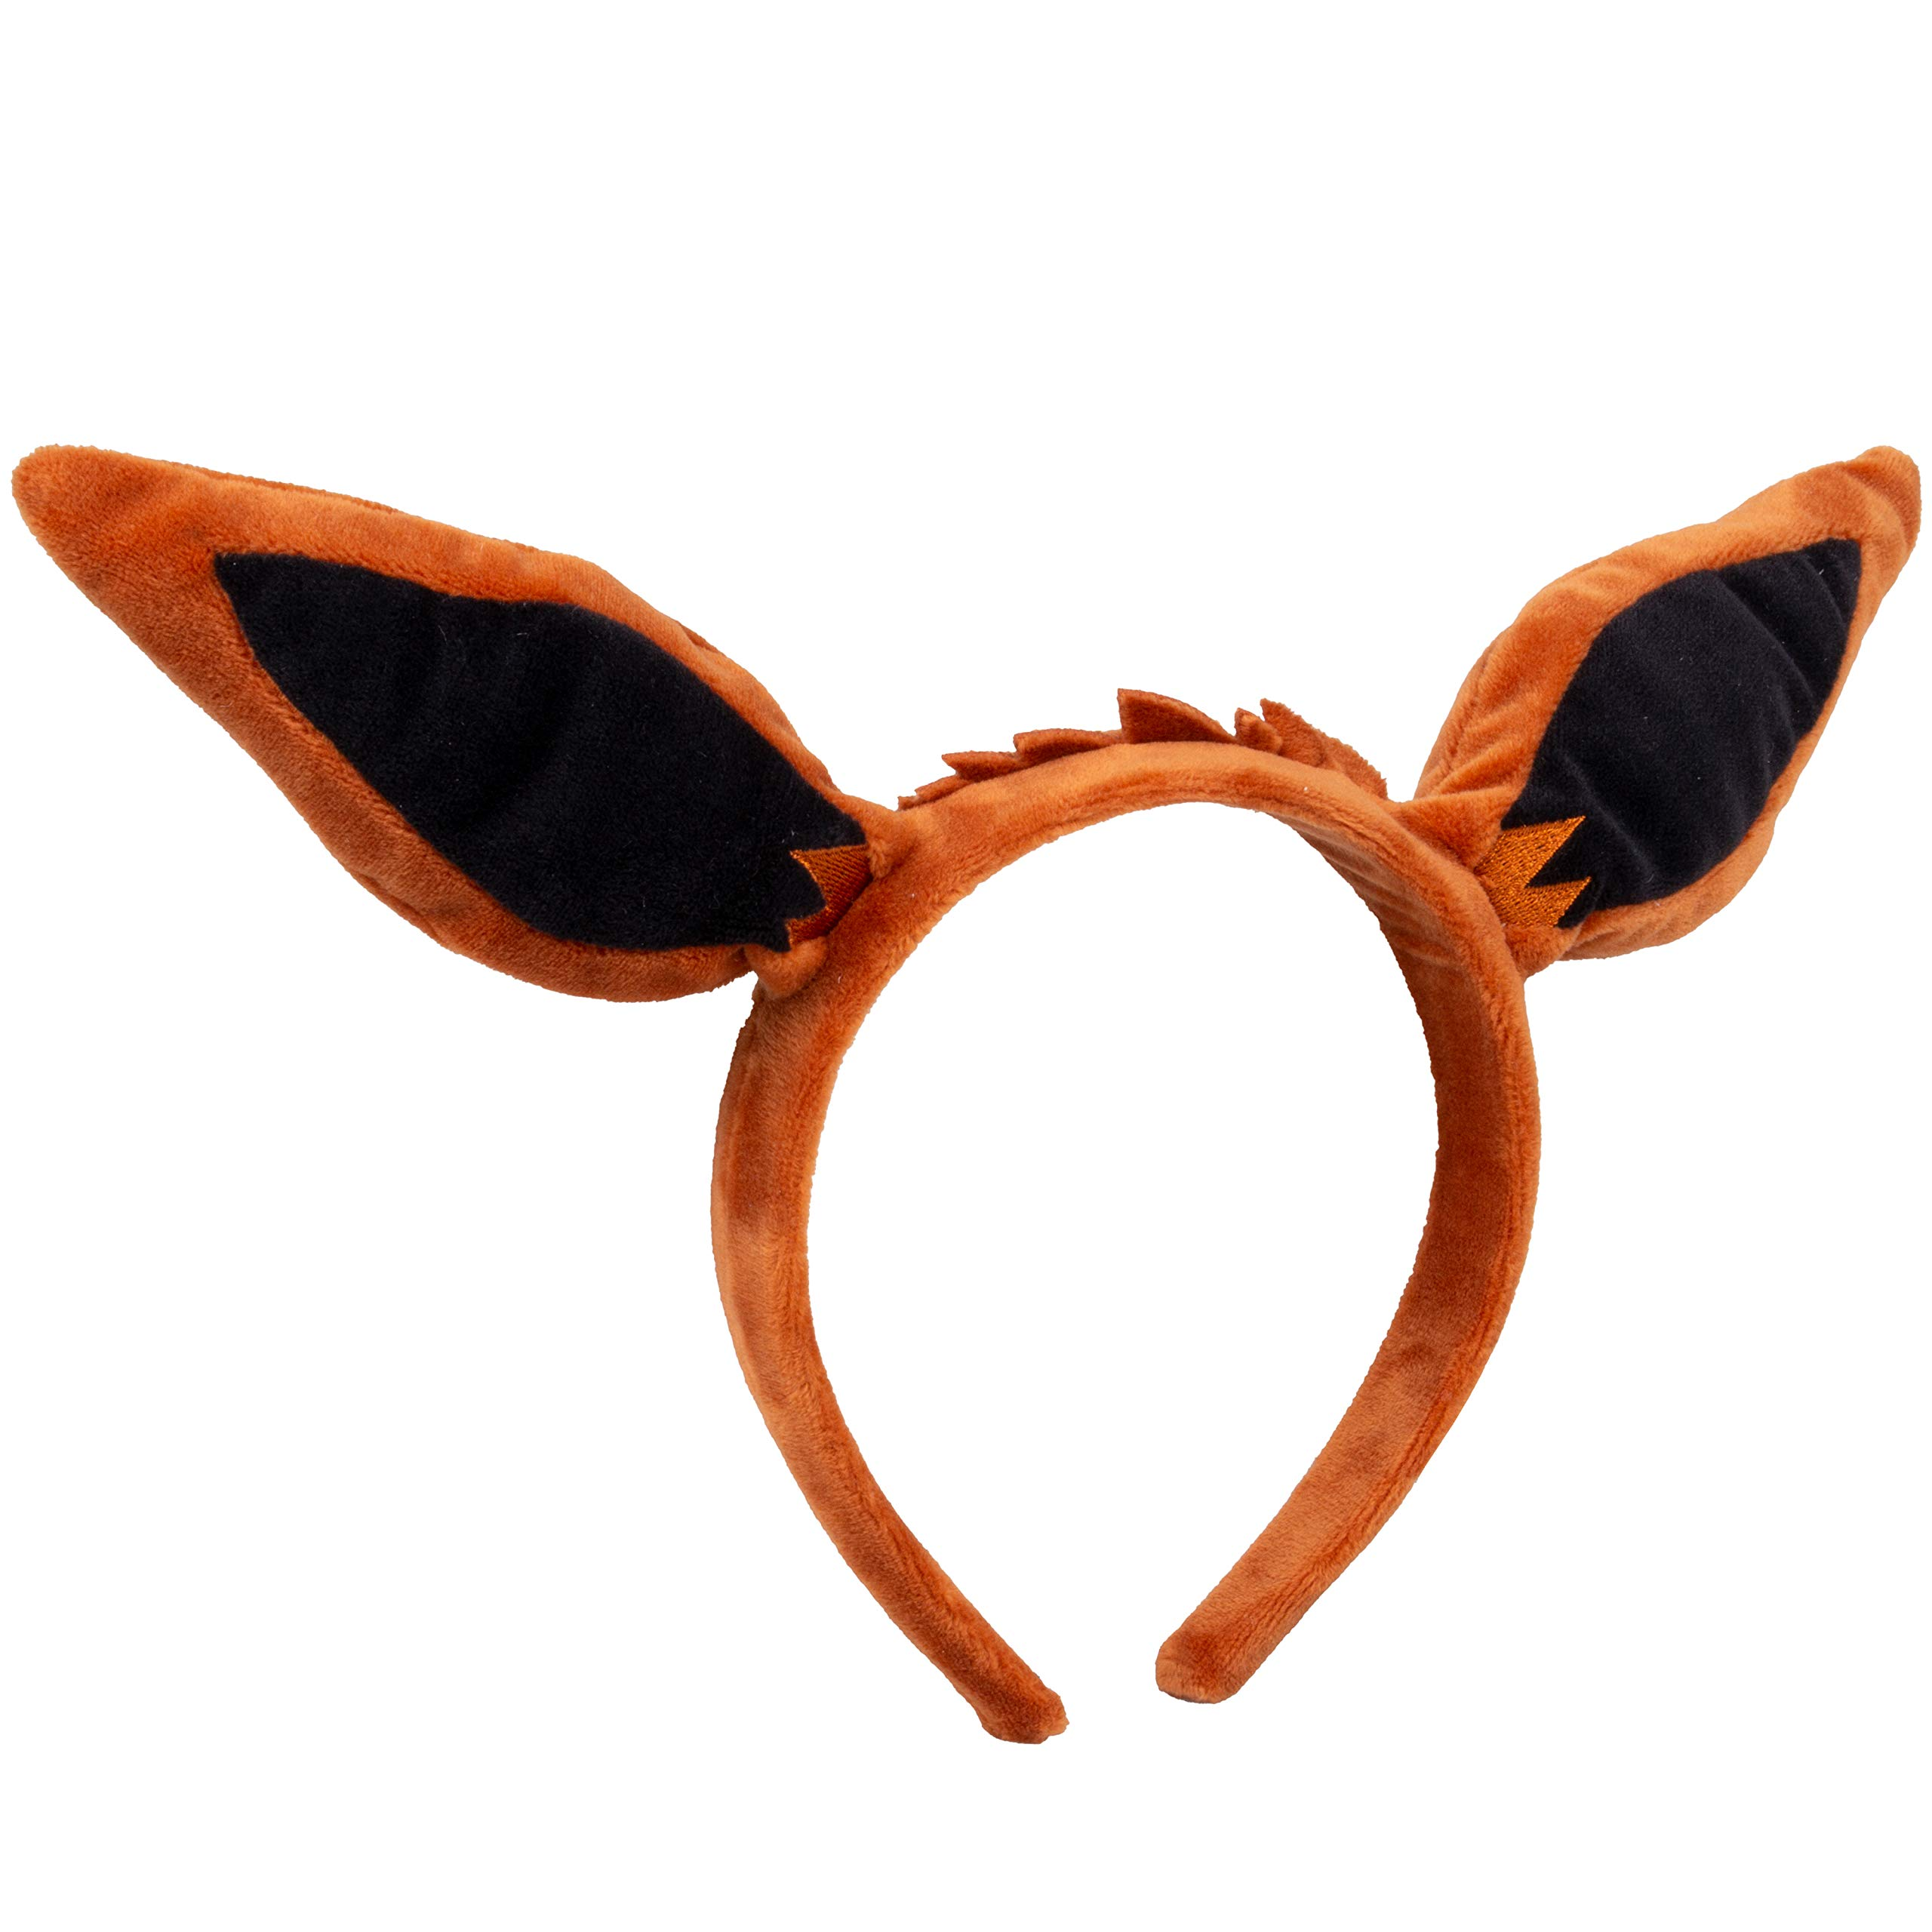 Pokémon Eevee Plush Headband - Eevee Ears for Dress Up, Halloween and More - One